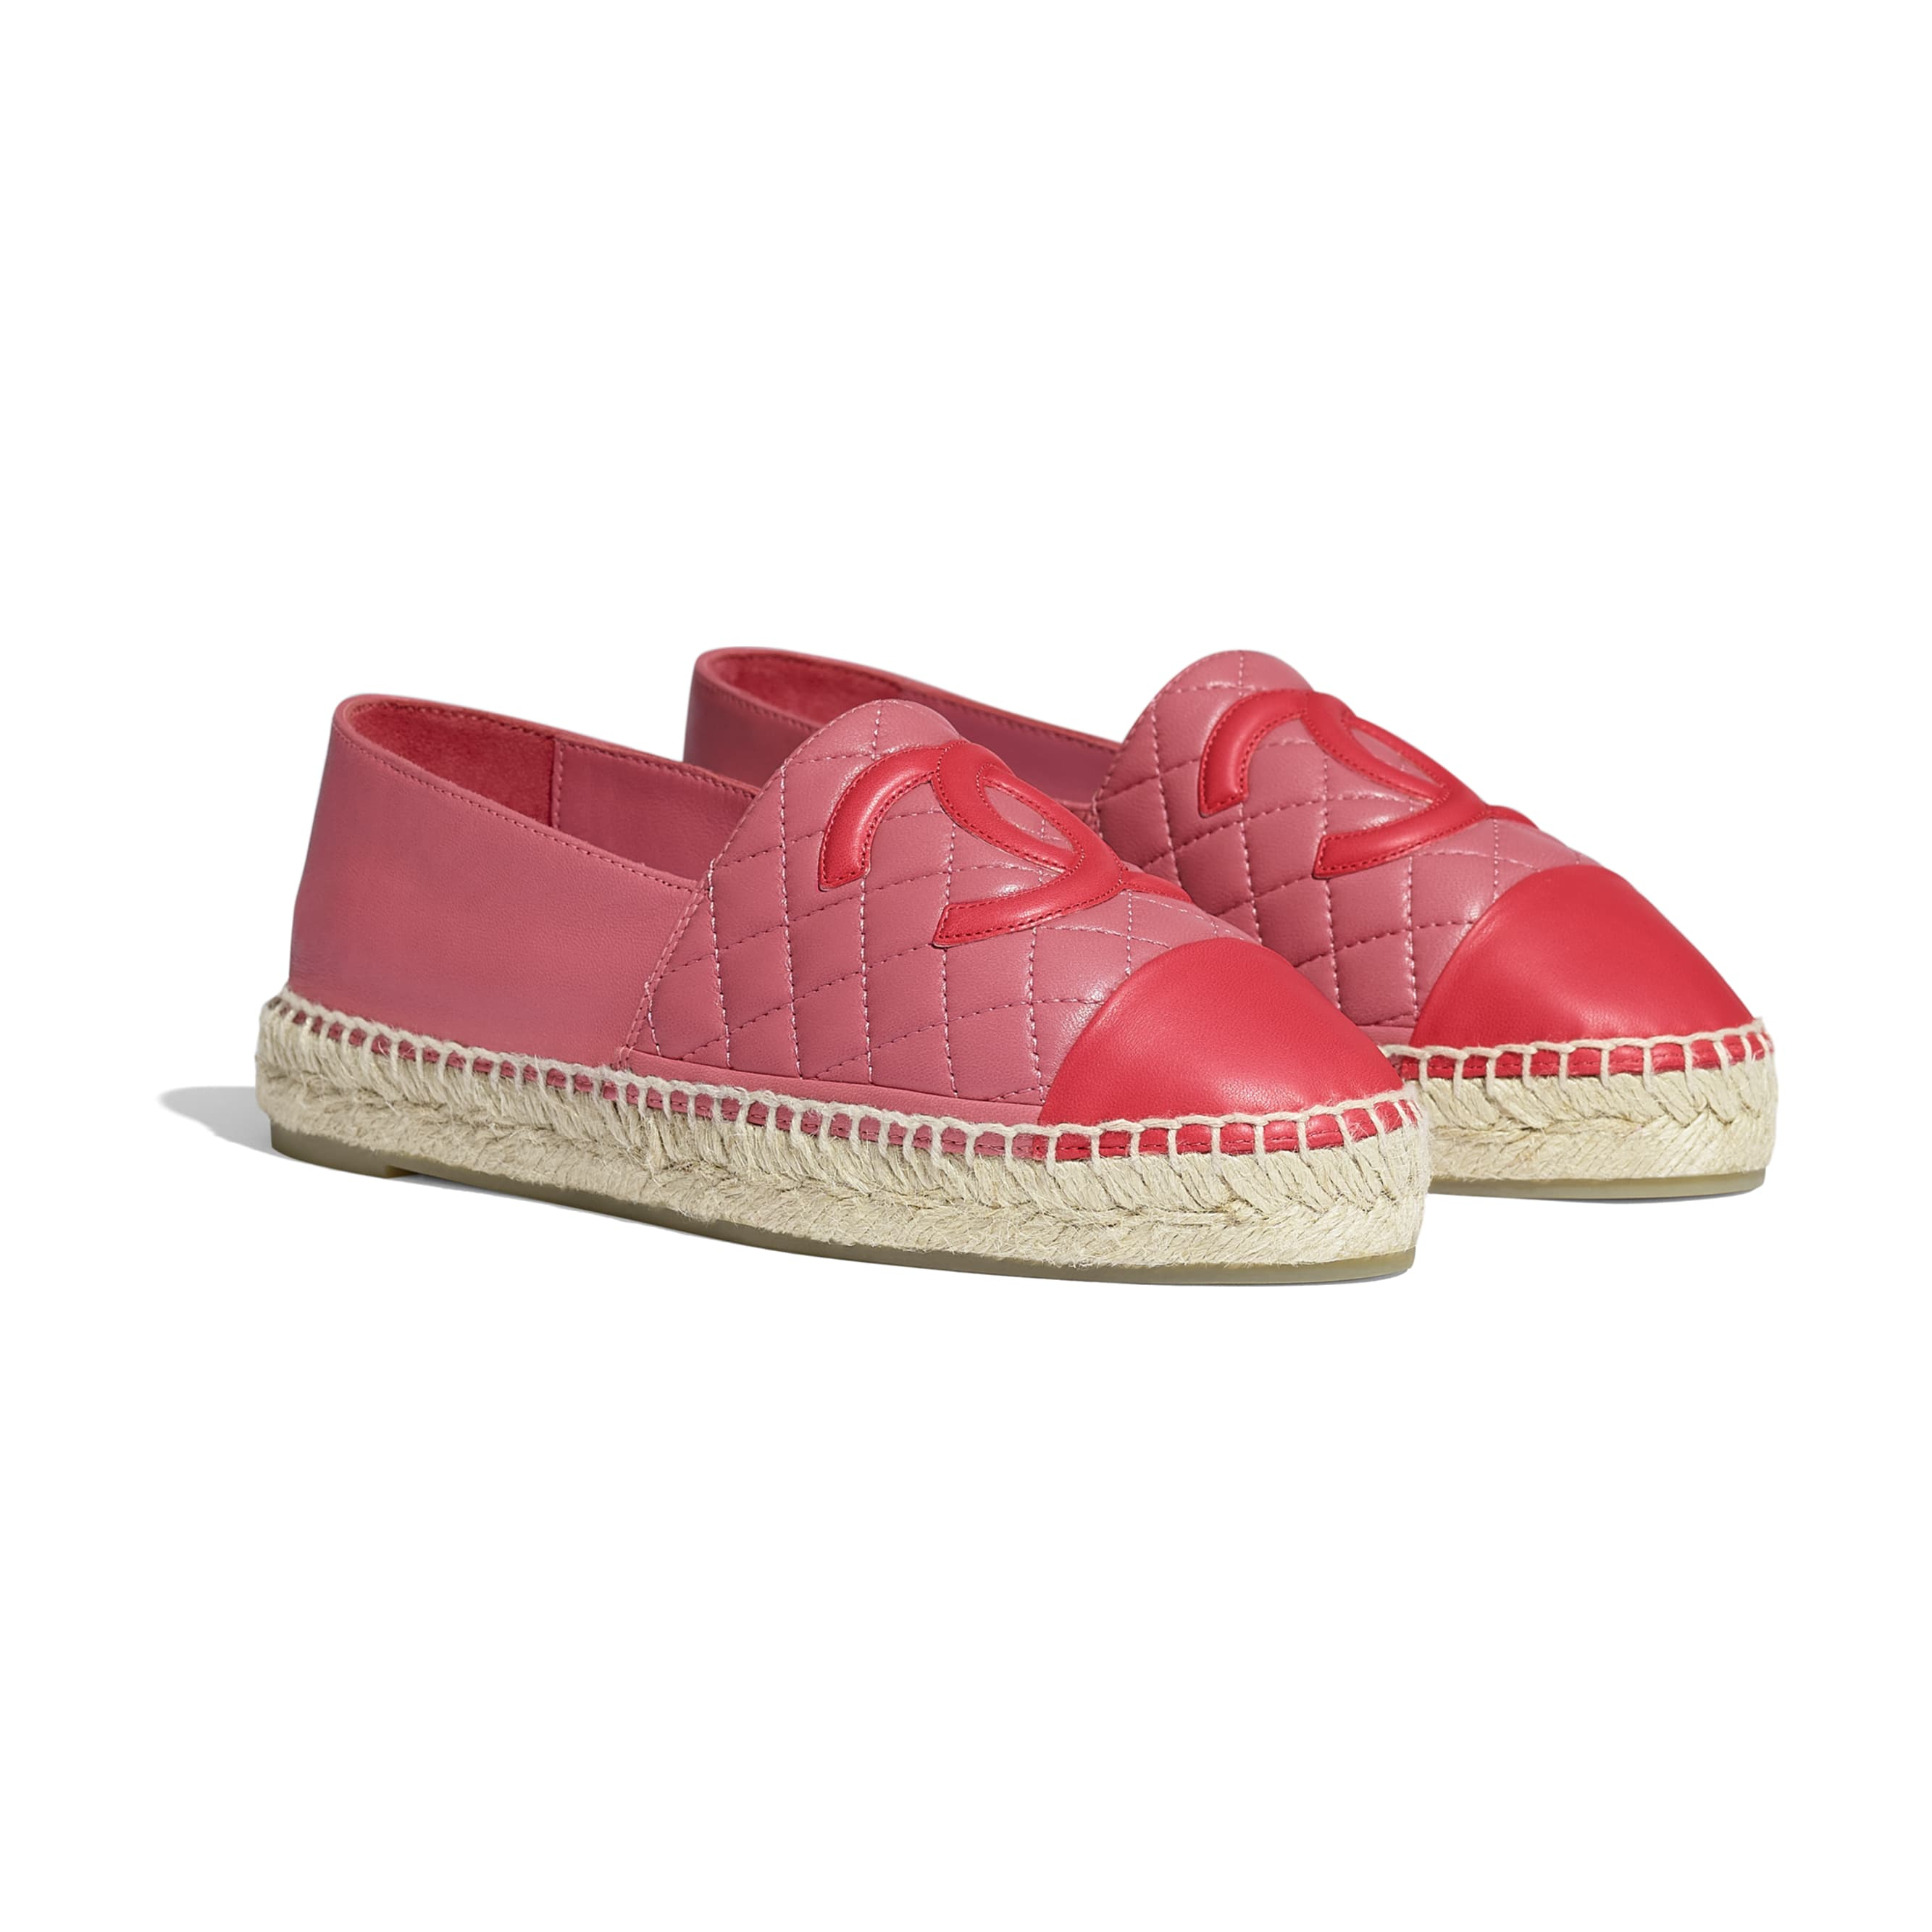 Espadrilles - Pink & red - Lambskin - CHANEL - Alternative view - see standard sized version